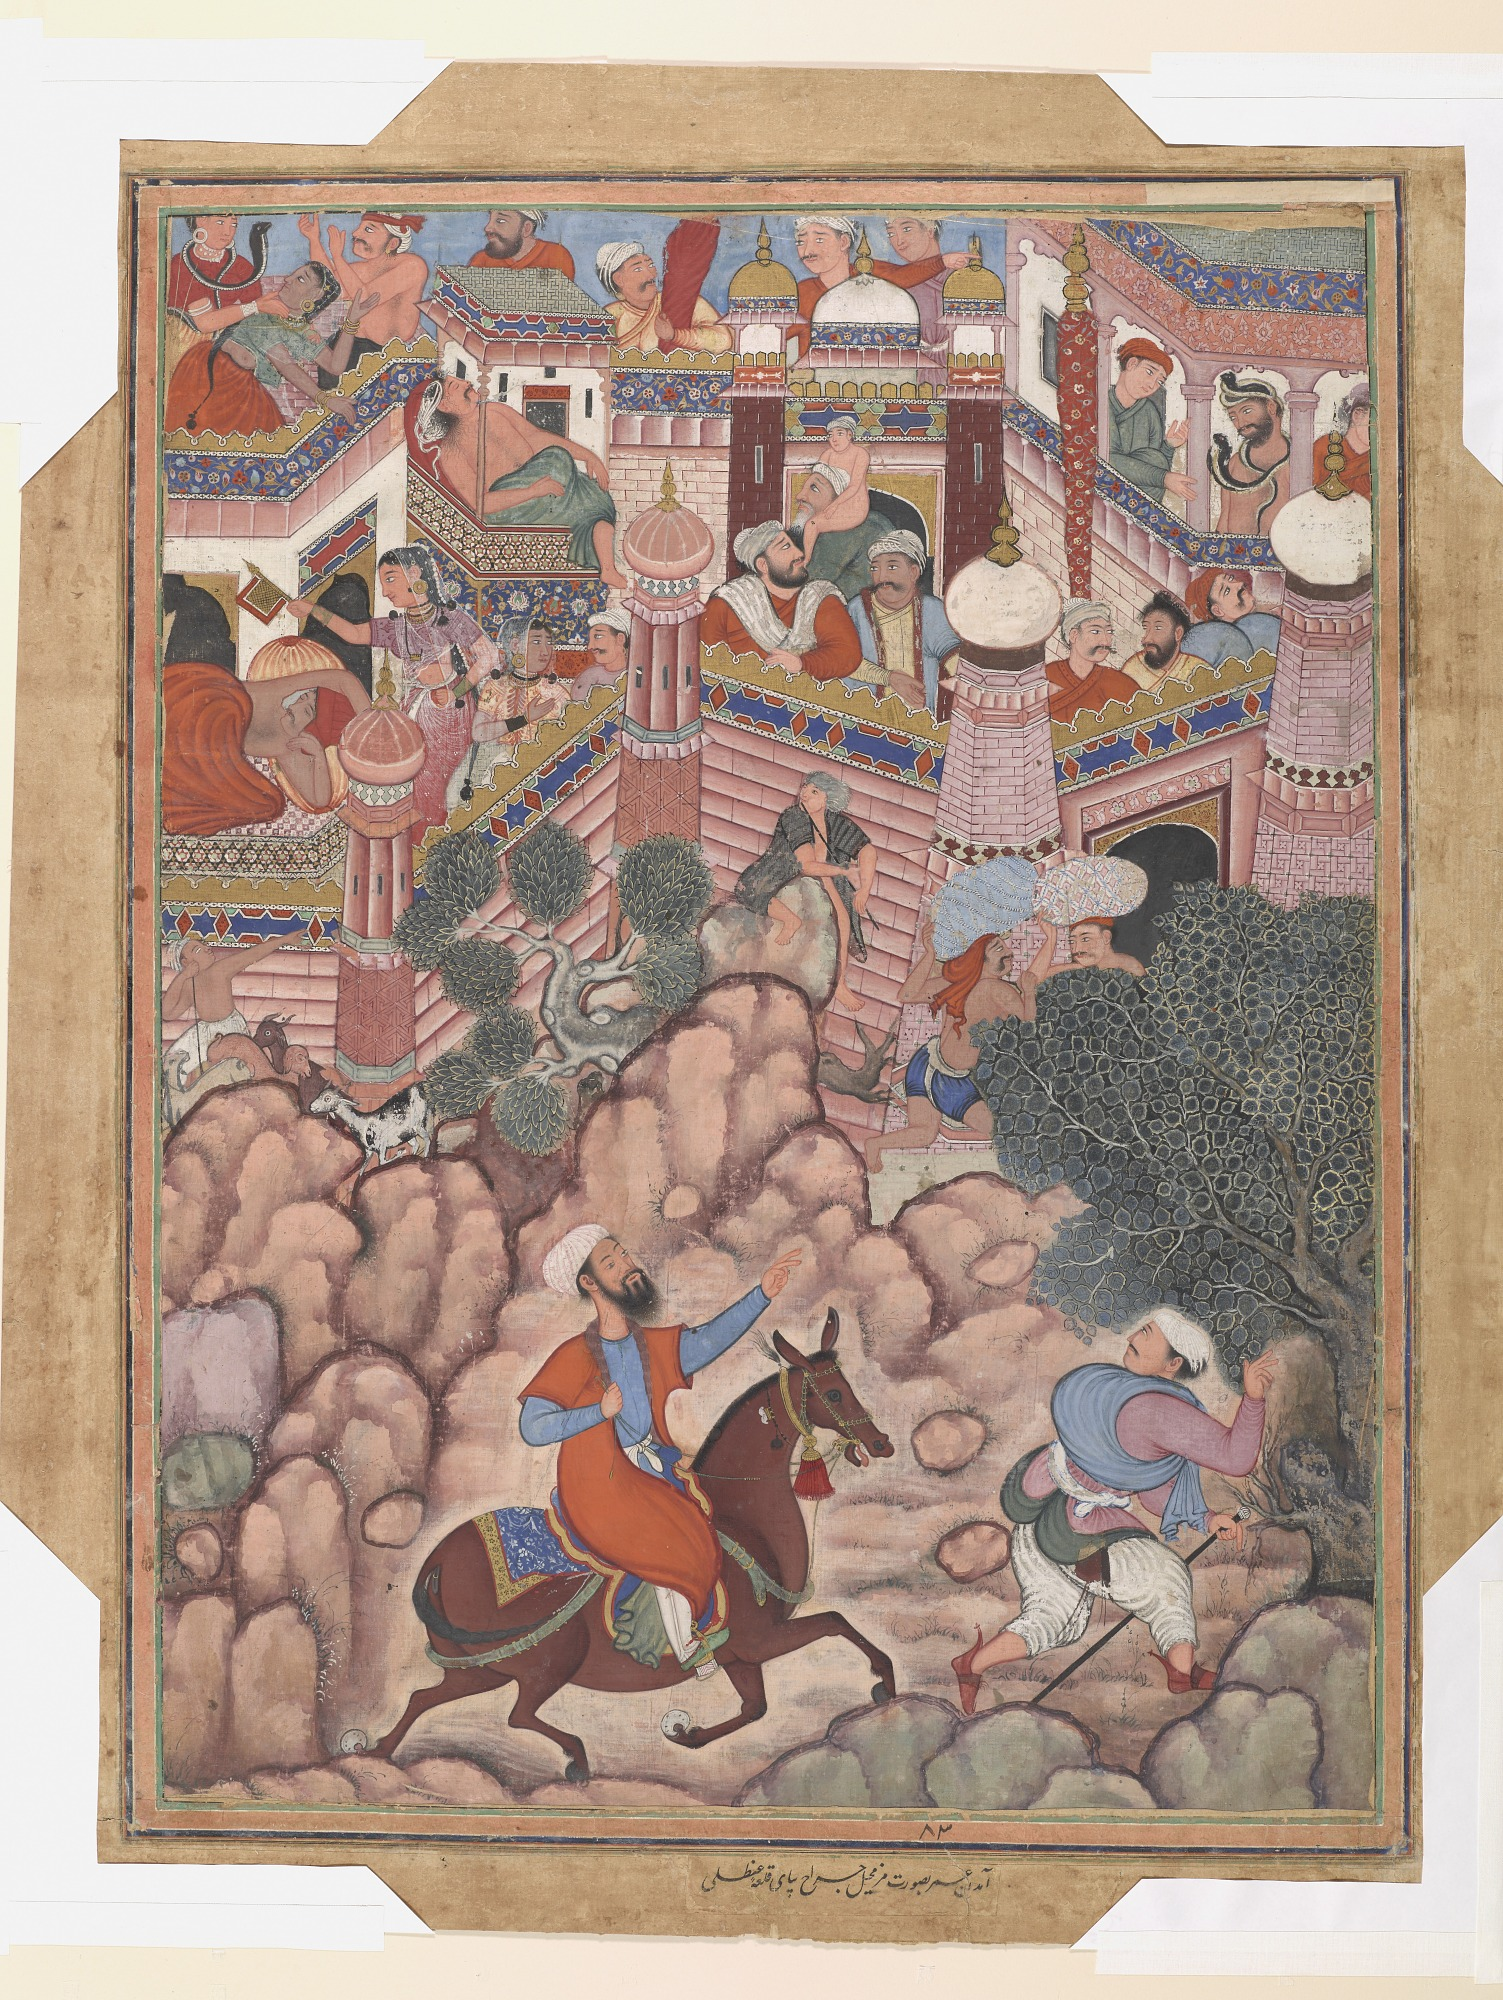 Umar Disguised as the Surgeon Mazmahil, Arrives before the Castle of Antali from a Hamzanama